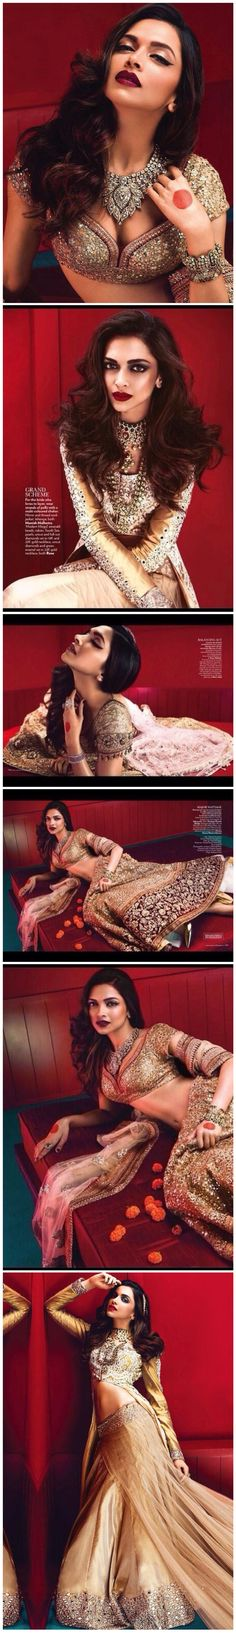 #LoveDeepika Here's an exclusive look at Deepika Padukone on the June cover of VOGUE India.